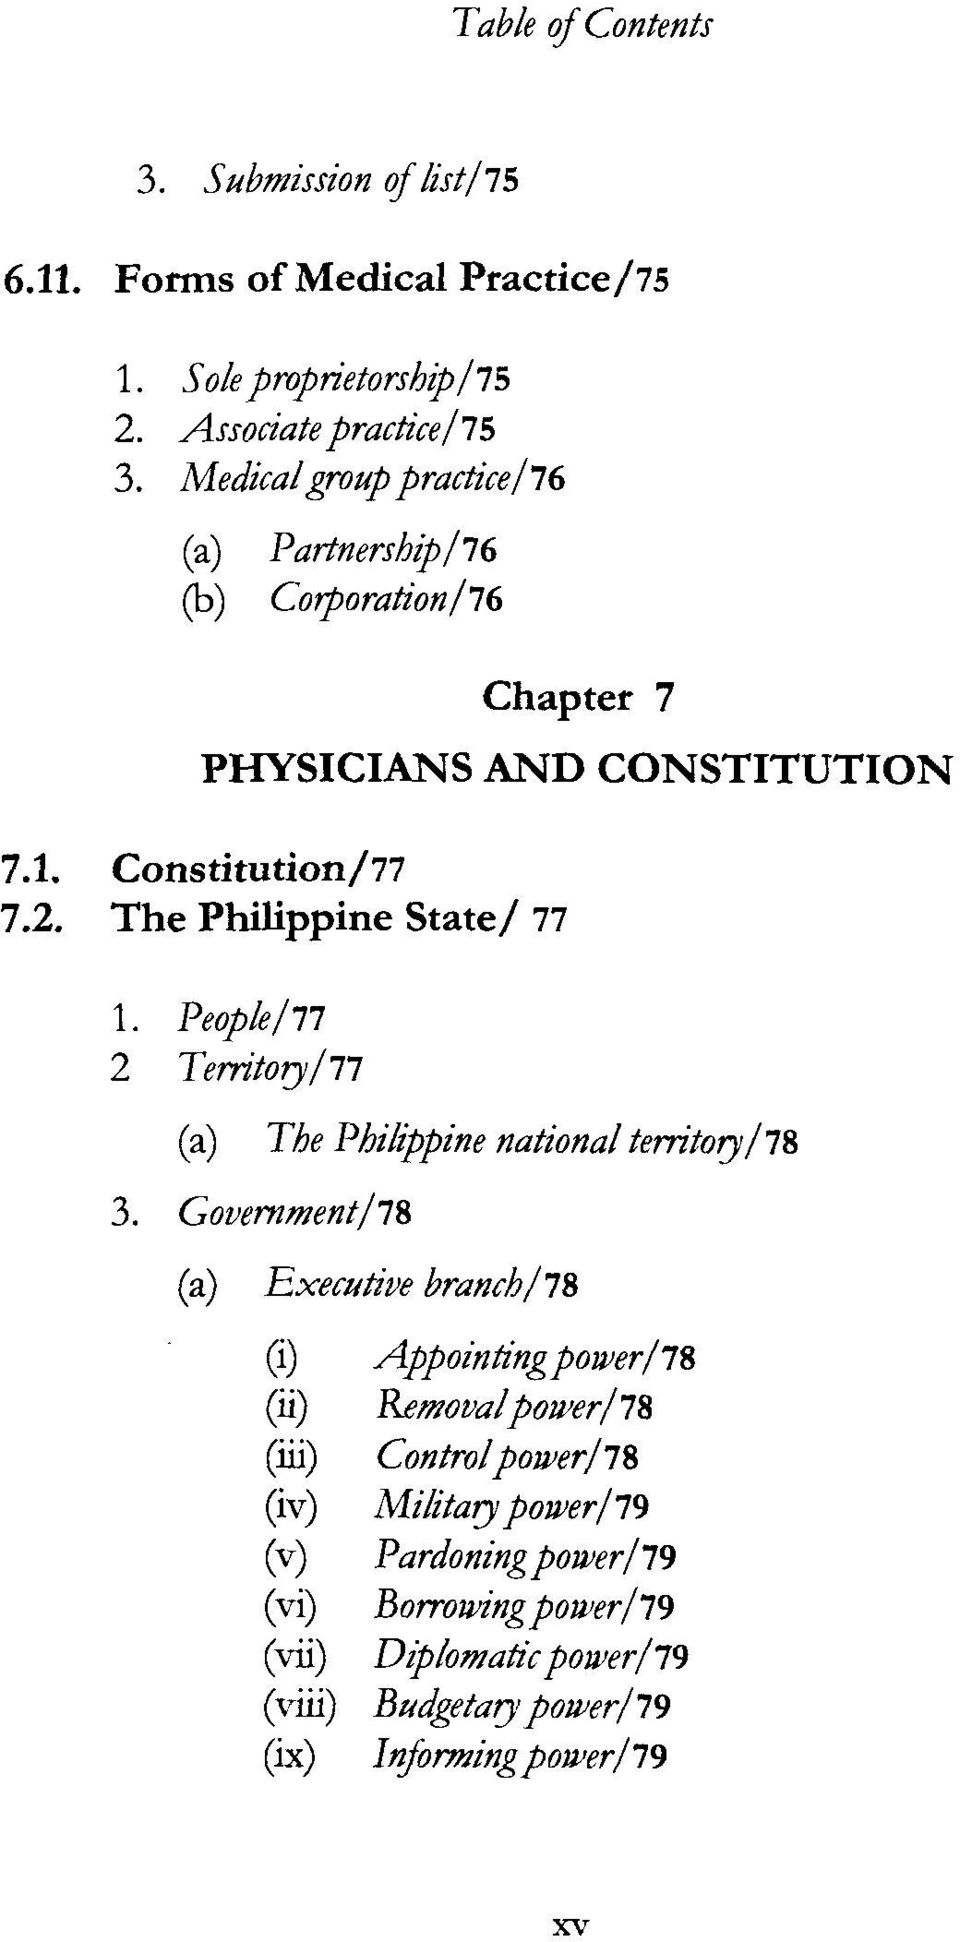 Basics of philippine medical jurisprudence and ethics pdf the philippine state 77 1 people 111 2 territory1 3 fandeluxe Choice Image